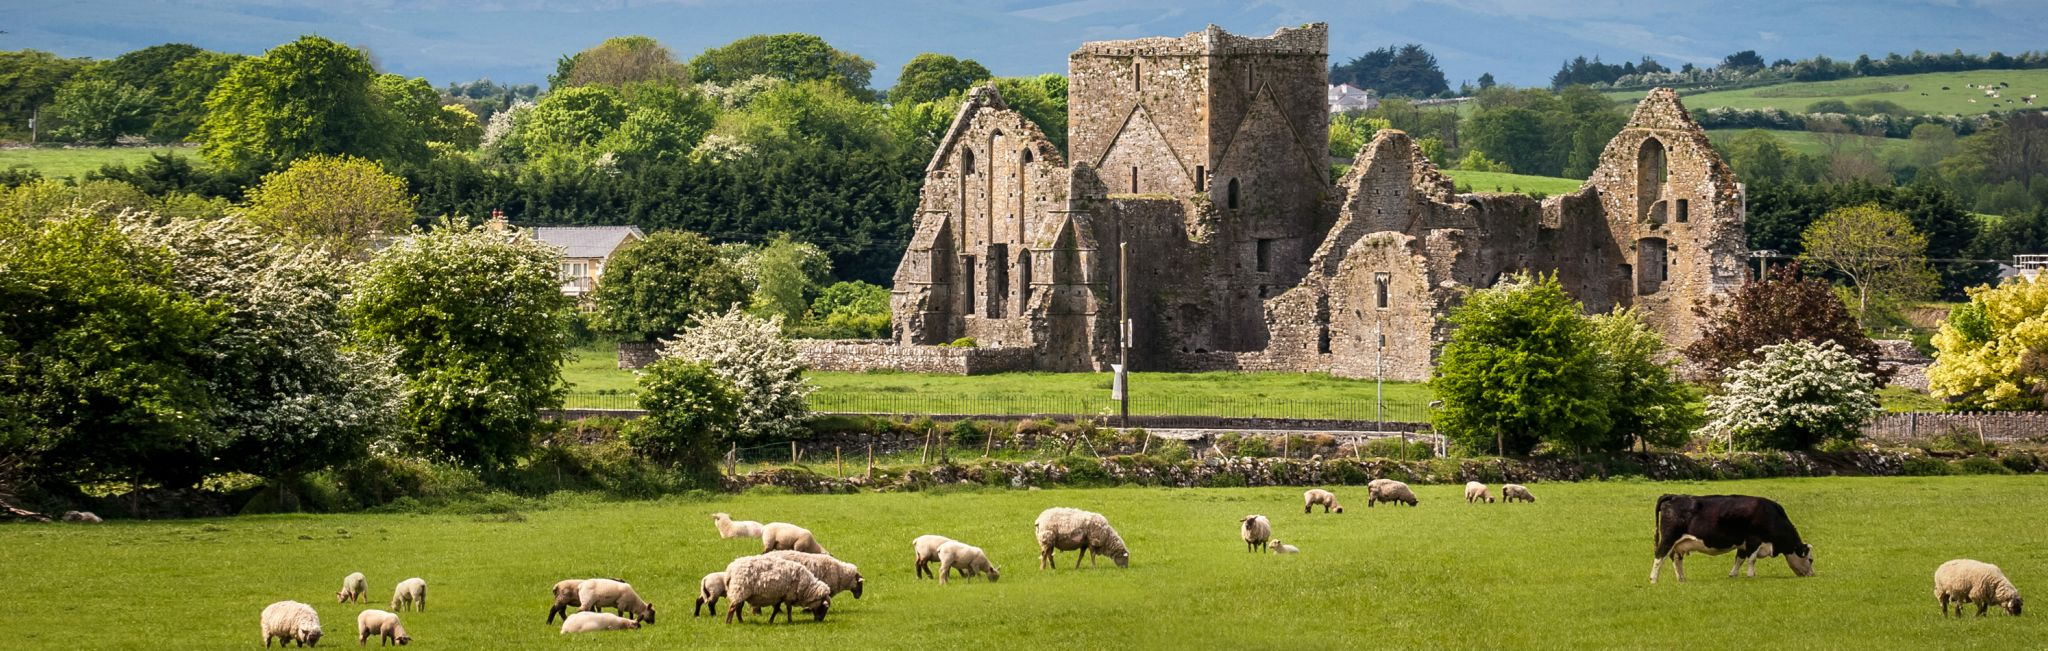 Best Ireland Tours Vacations Travel Packages - Ireland trip